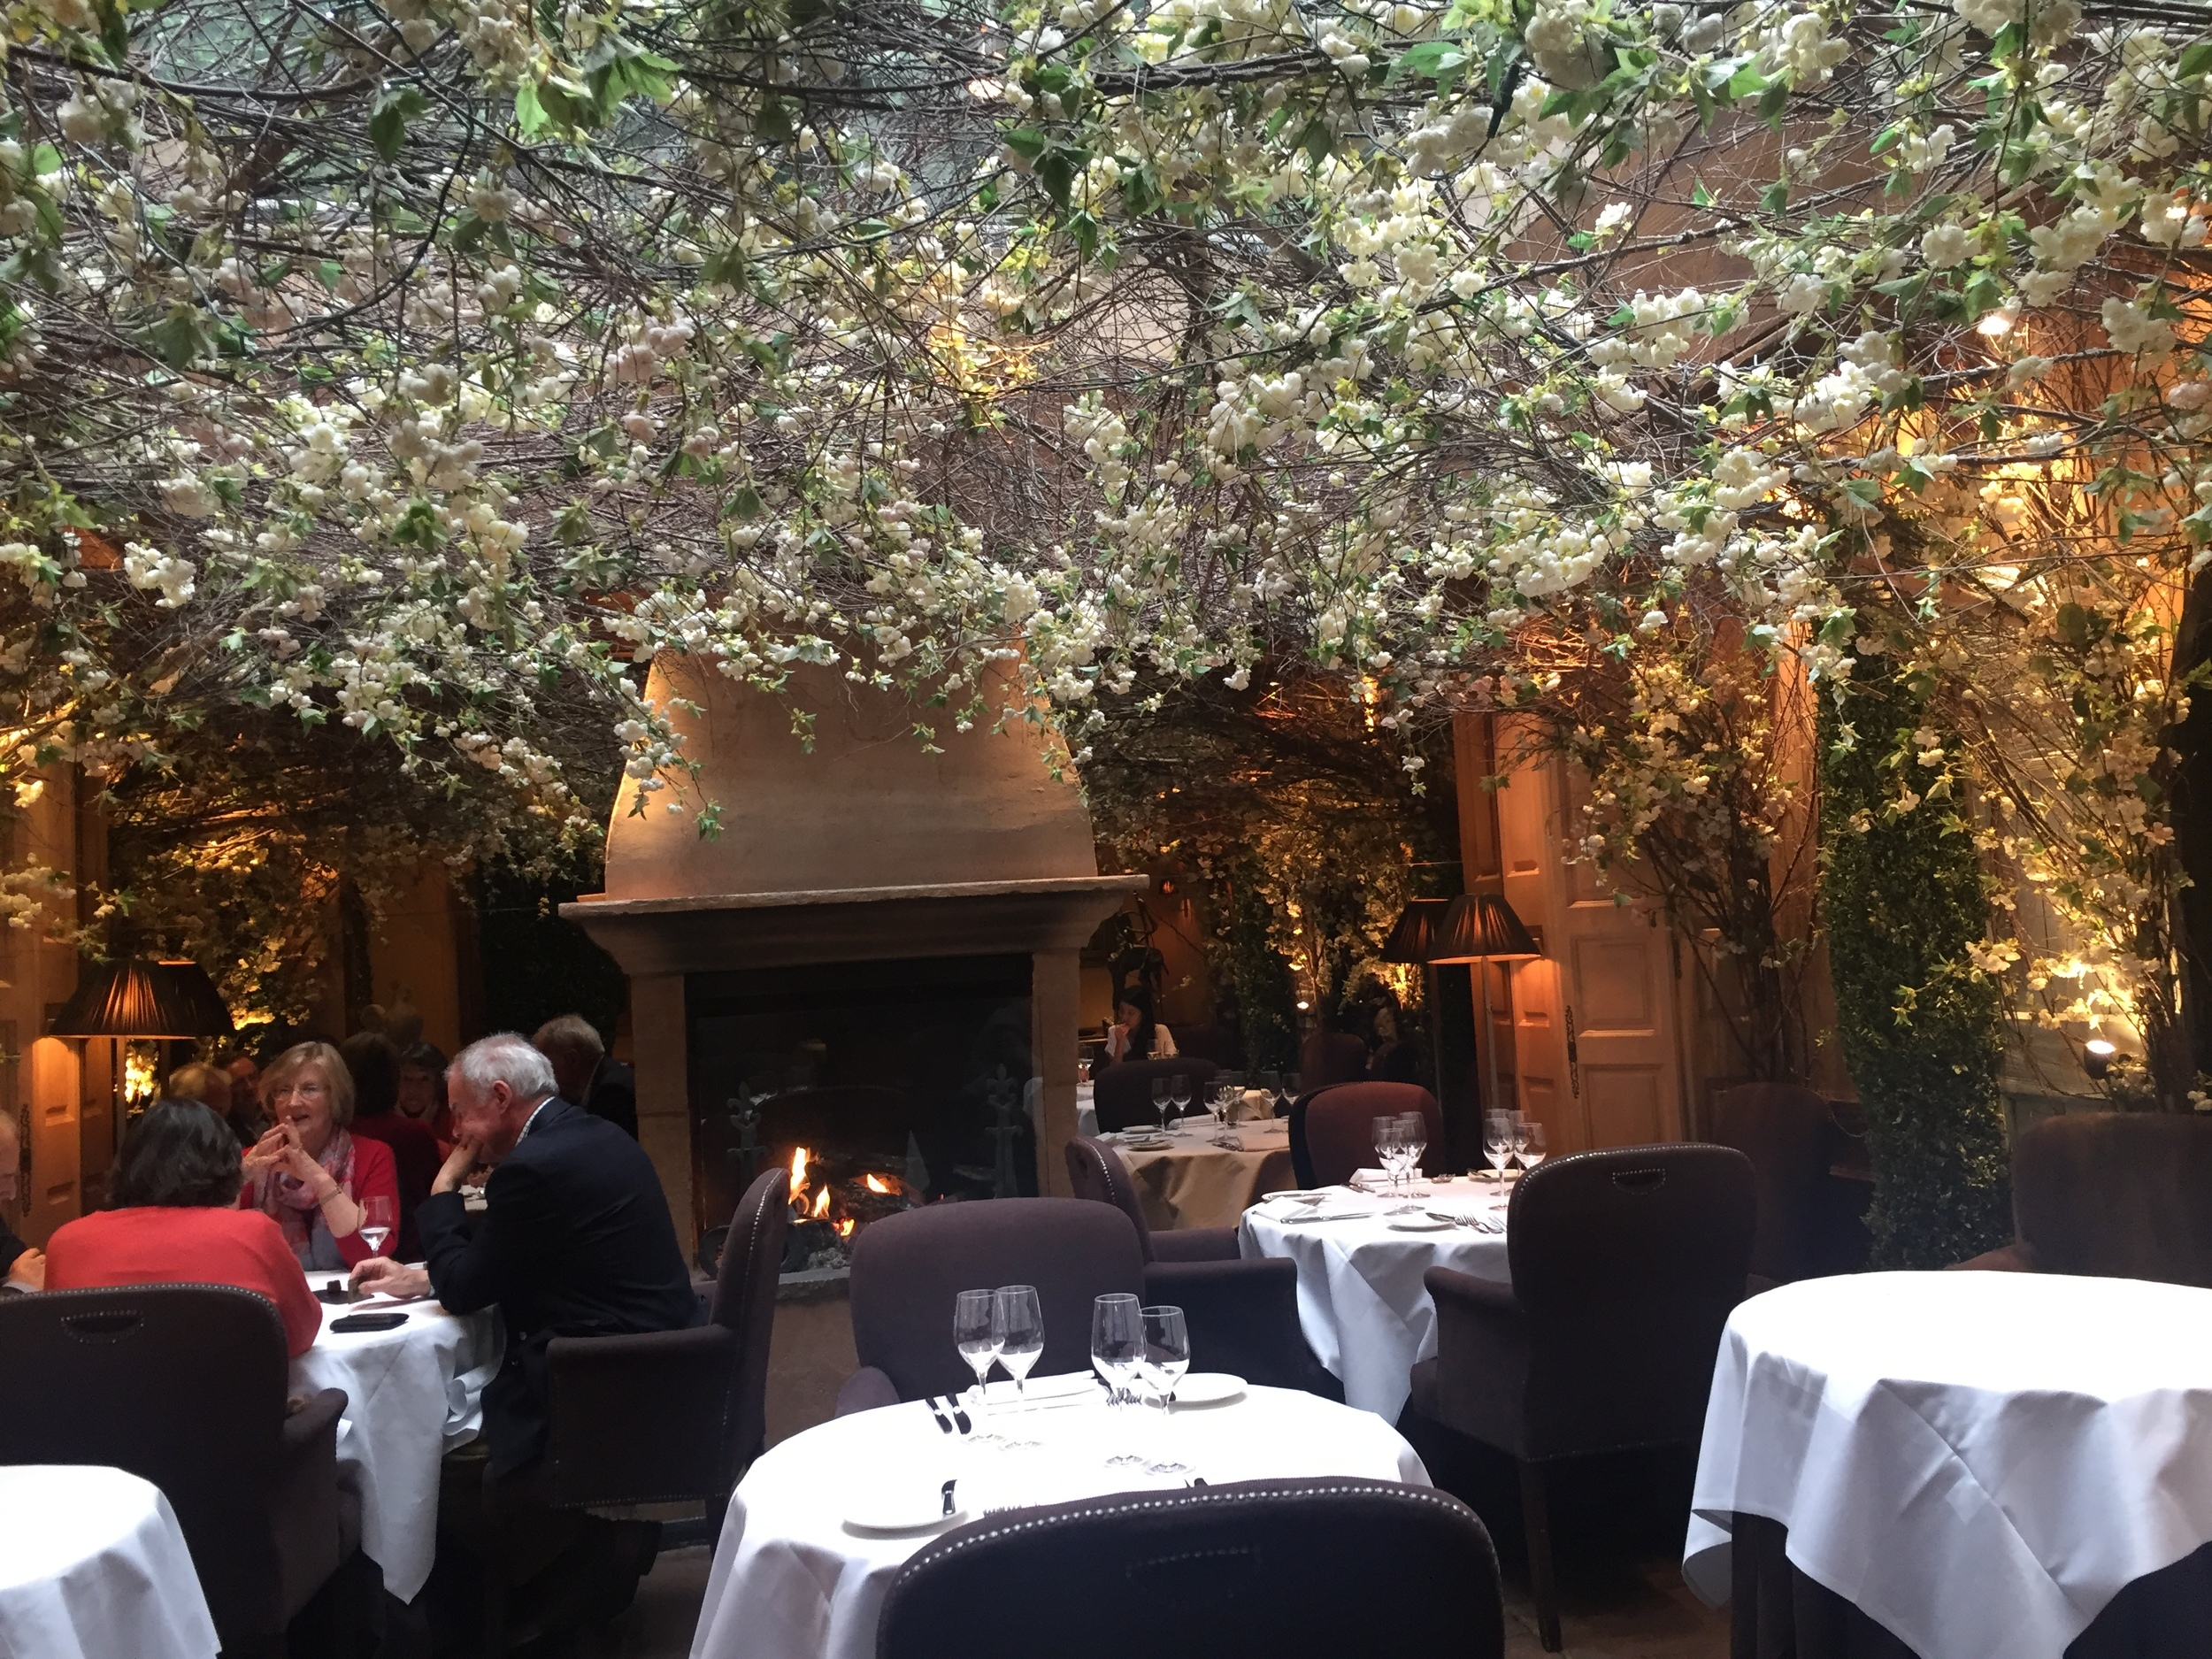 The flower covered ceiling created the perfect atmosphere for a romantic lunch or dinner date.